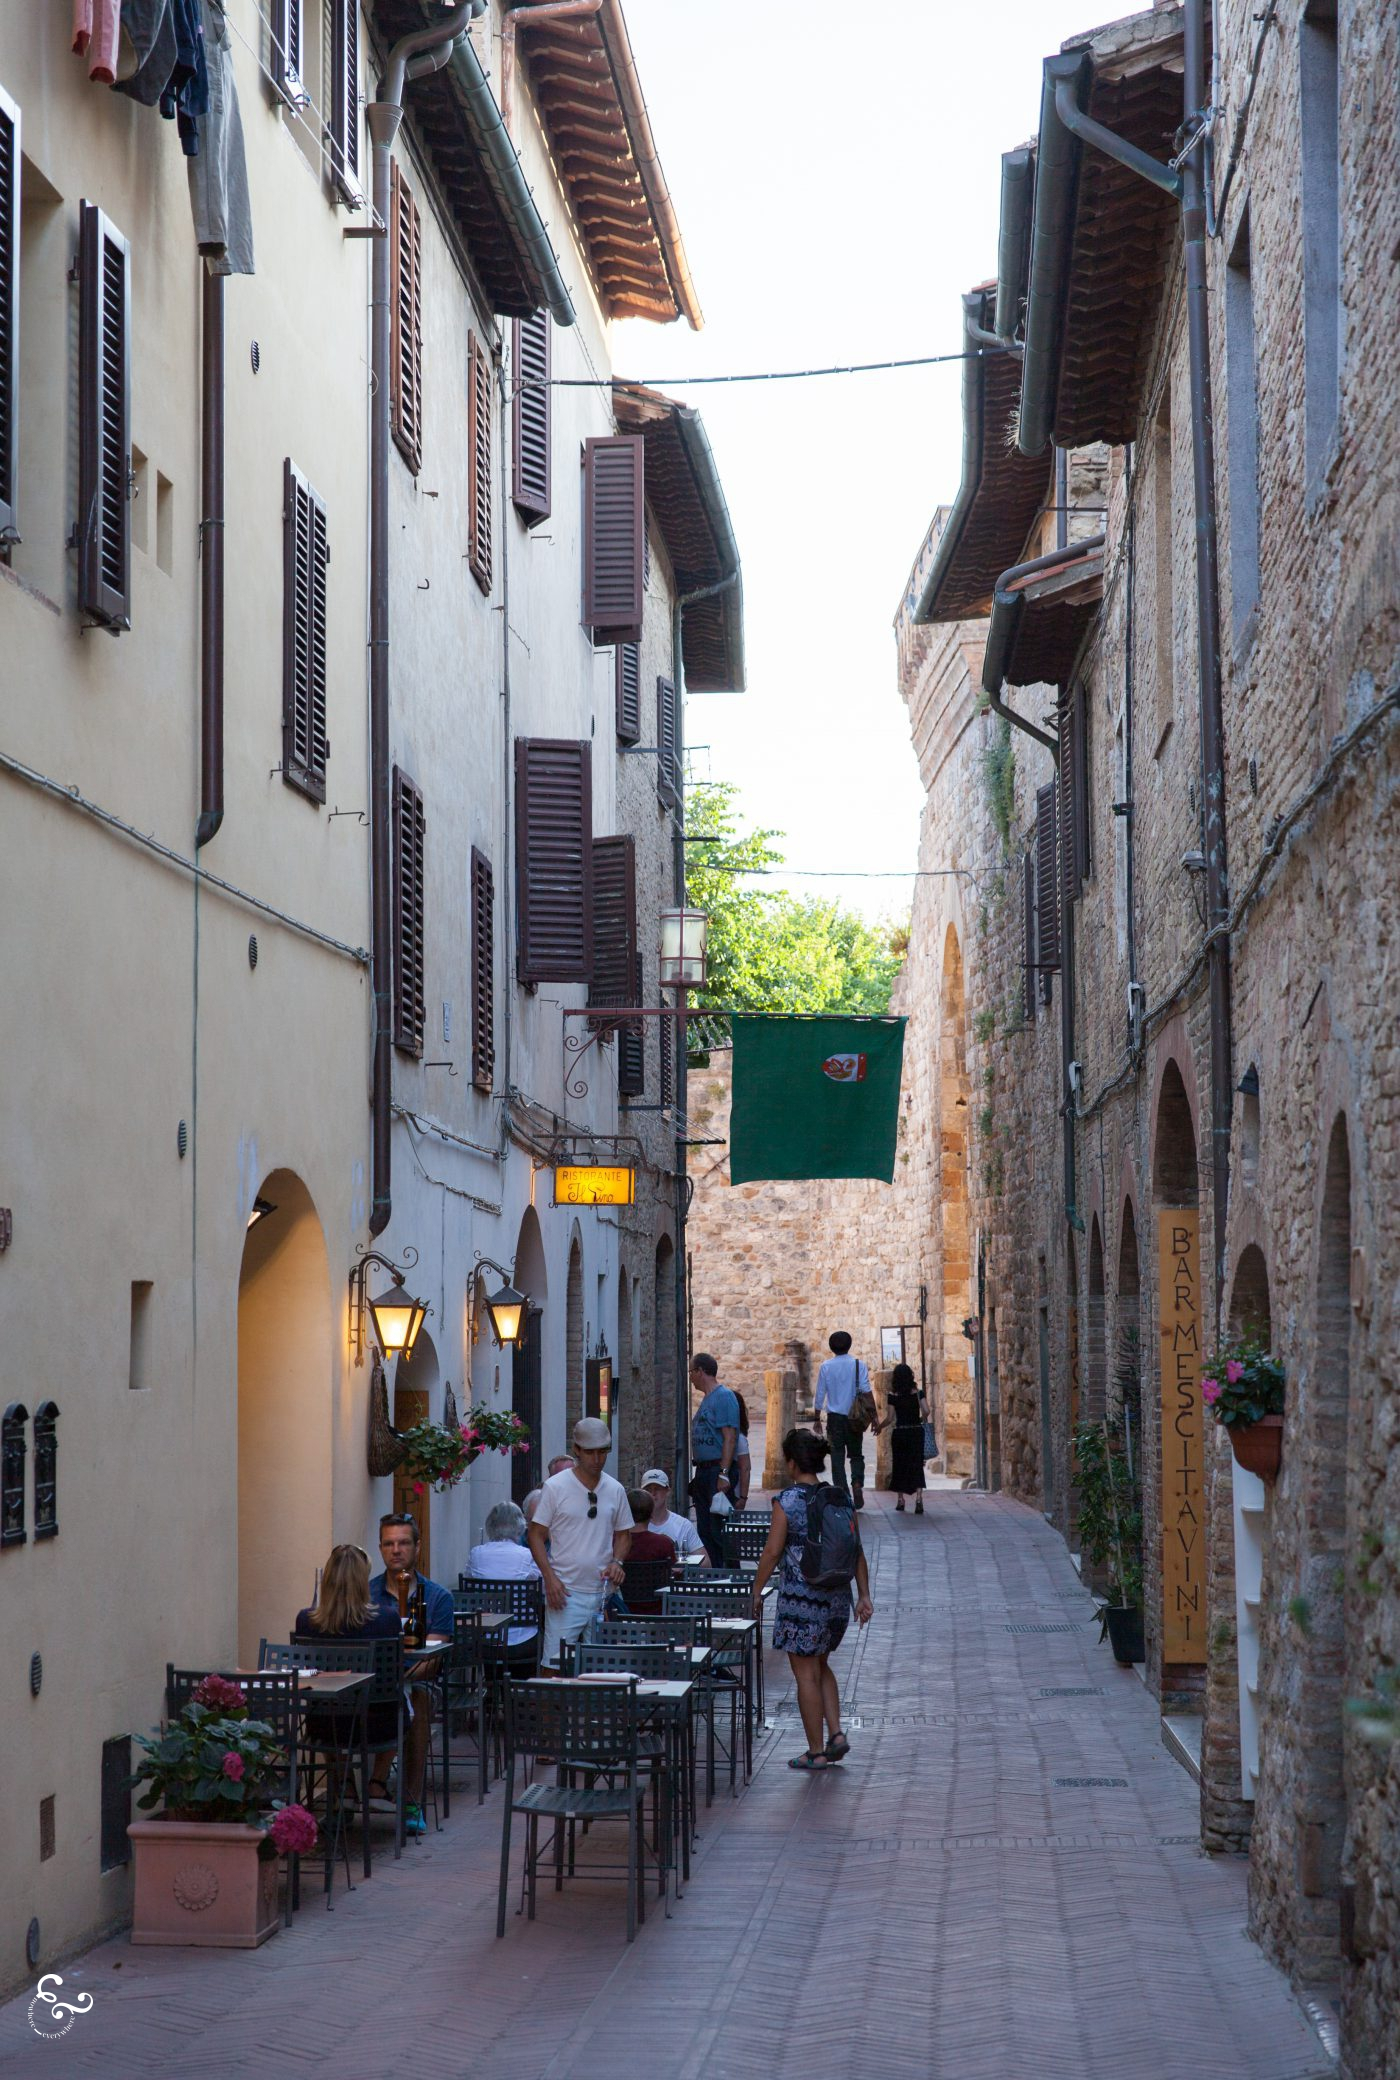 San Gimigano Tuscany Italy Nowhere & Everywhere cute towns Europe Travel Photography Lis Dingjan Free Range Pixels